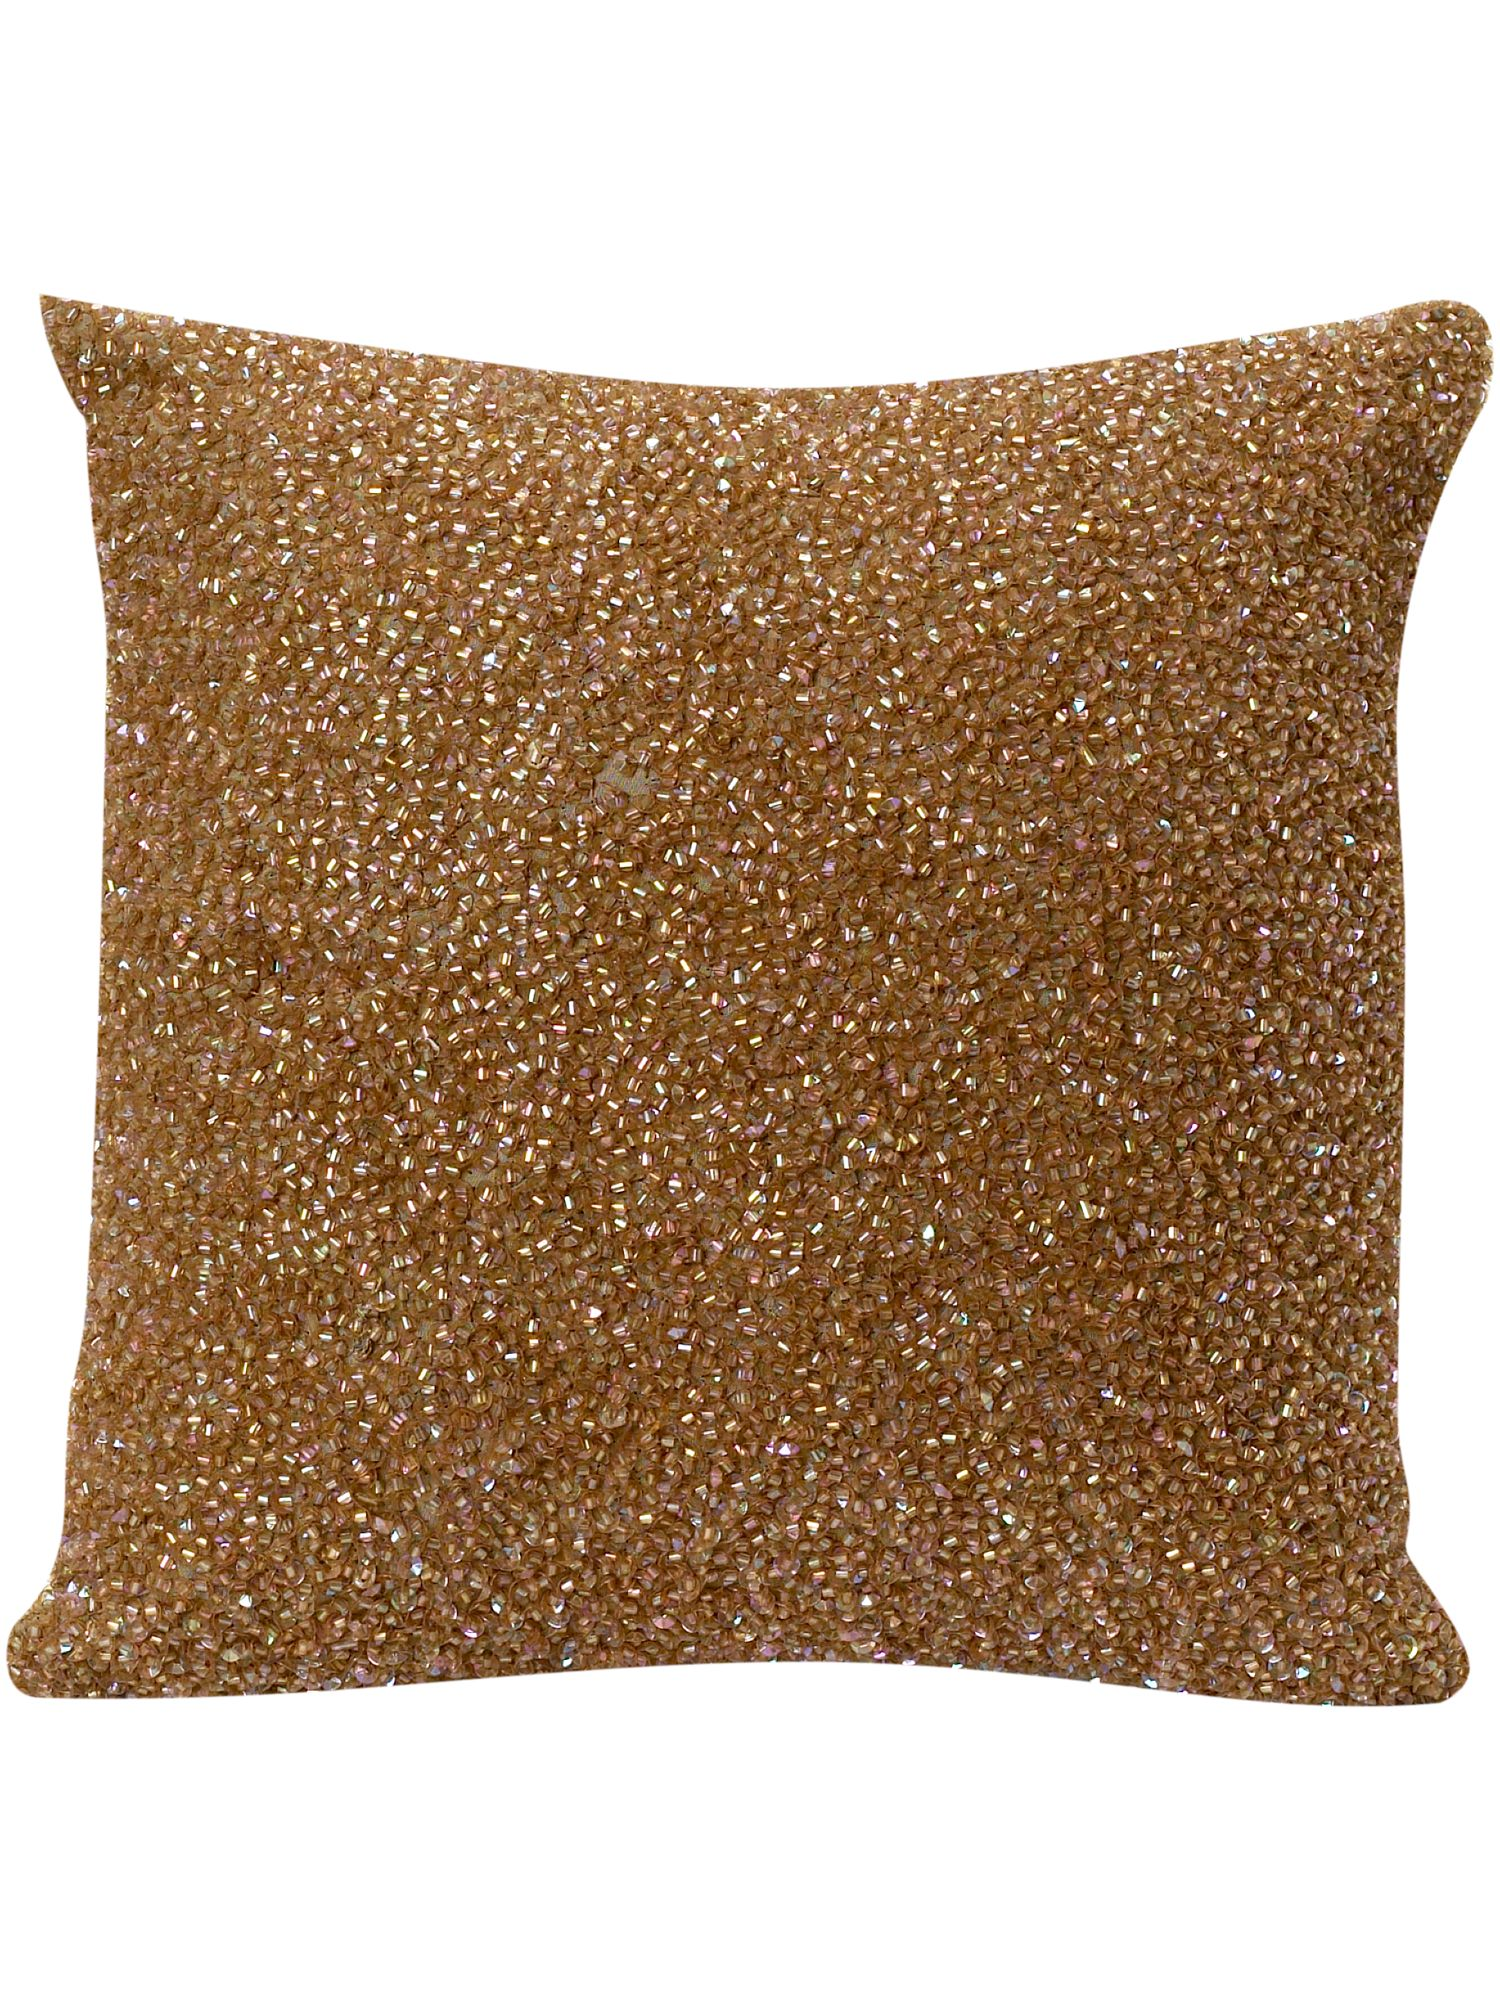 Shimmer cushion natural